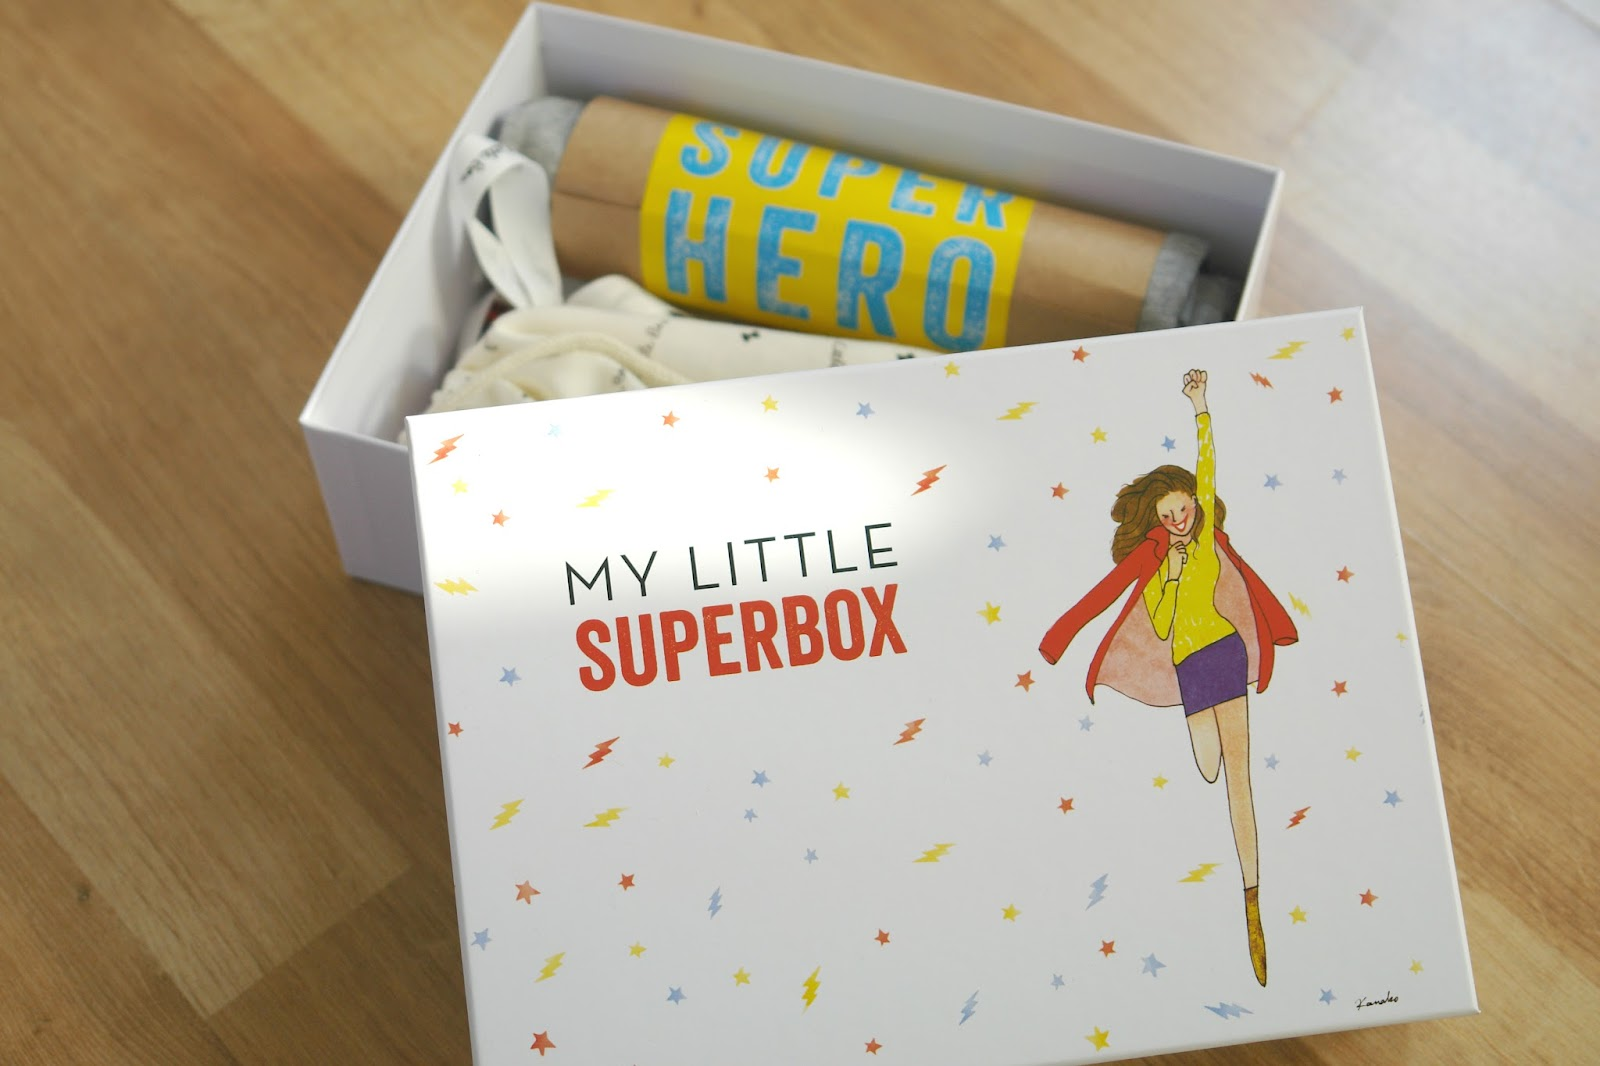 My Little Superbox